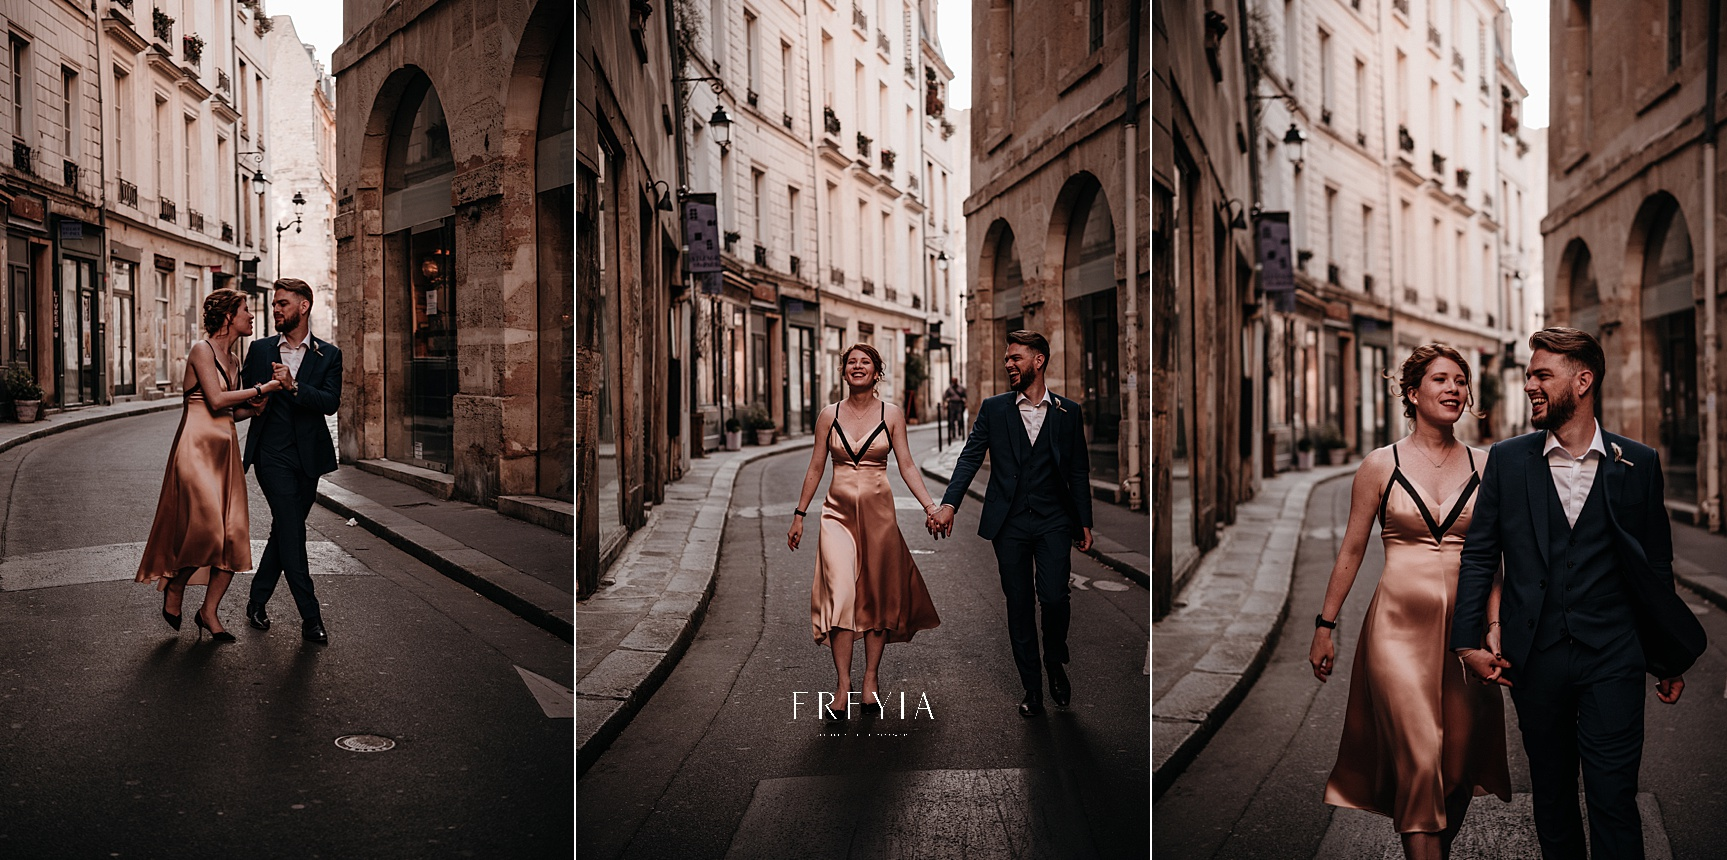 P + F |  mariage reportage alternatif moody intime vintage naturel boho boheme |  PHOTOGRAPHE mariage PARIS france destination  | FREYIA photography_-333.jpg